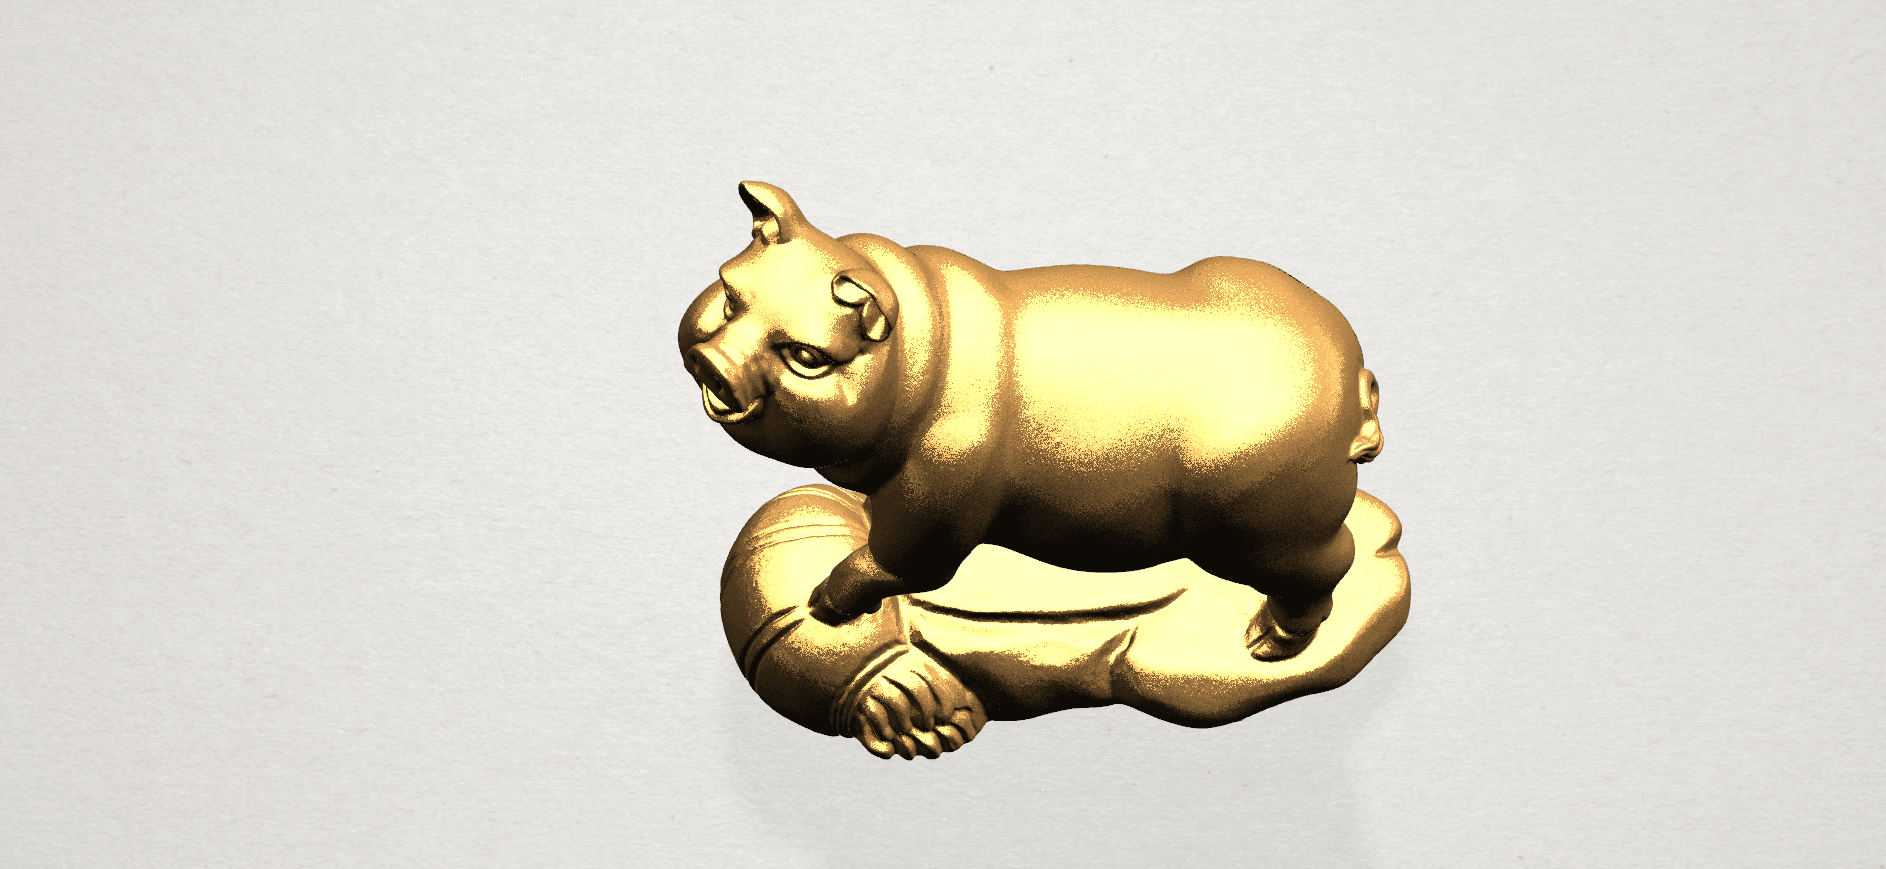 Chinese Horoscope12-B06.png Download free STL file Chinese Horoscope 12 pig • Model to 3D print, GeorgesNikkei